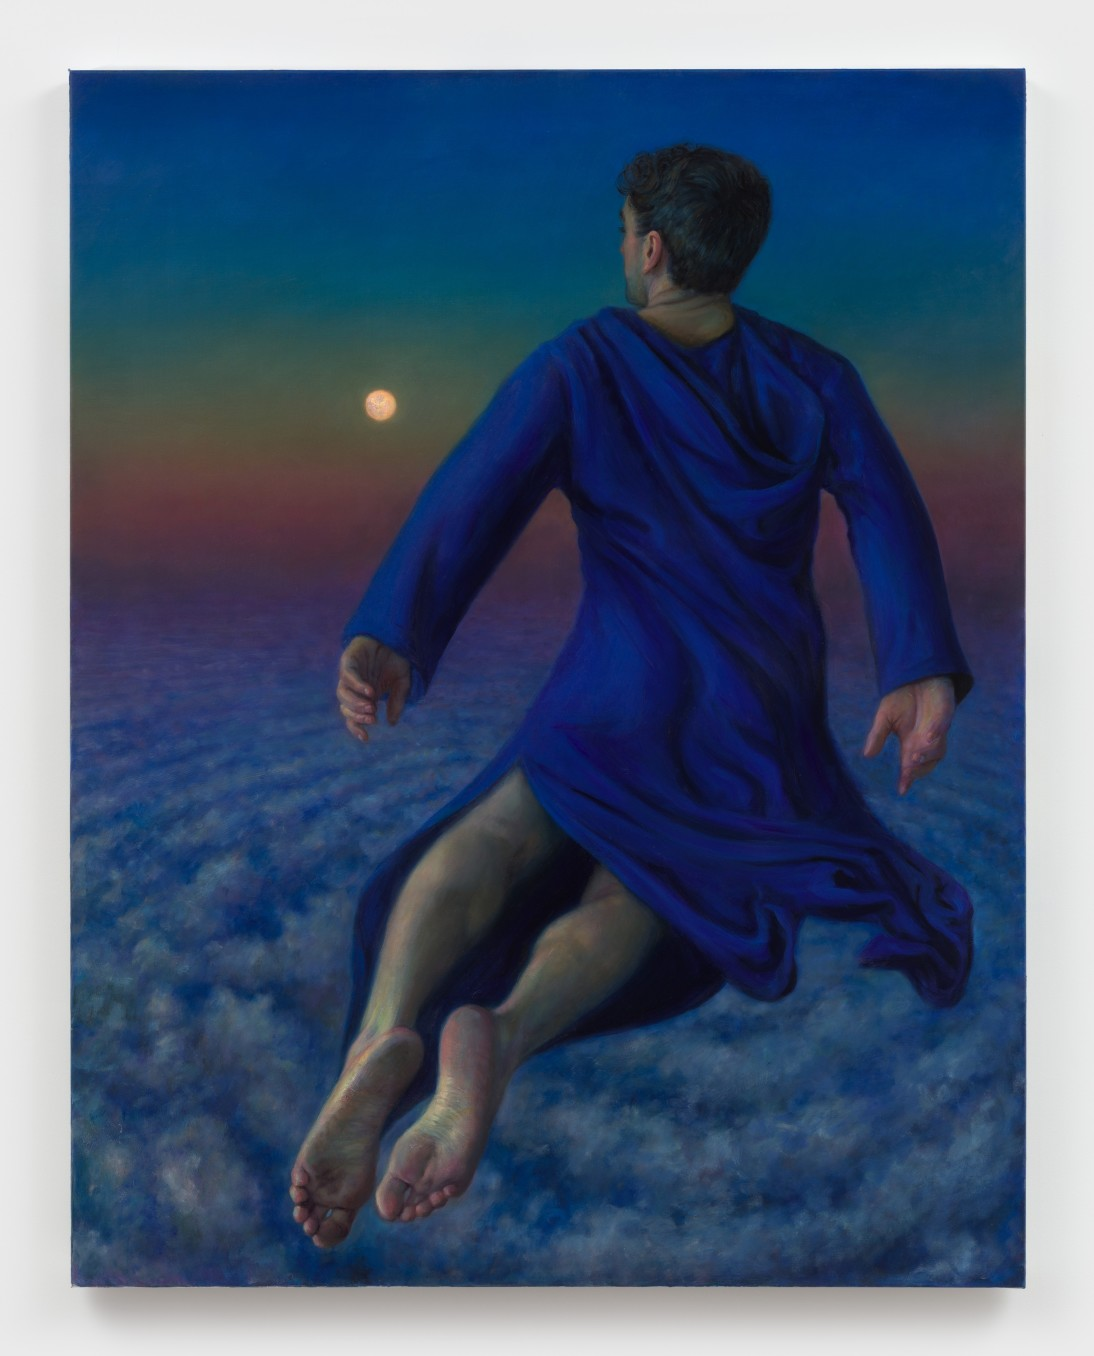 TM Davy, flying dream (man and moon), 2020, Oil on canvas, 116.8 x 91.4 cm, 46 x 36 in